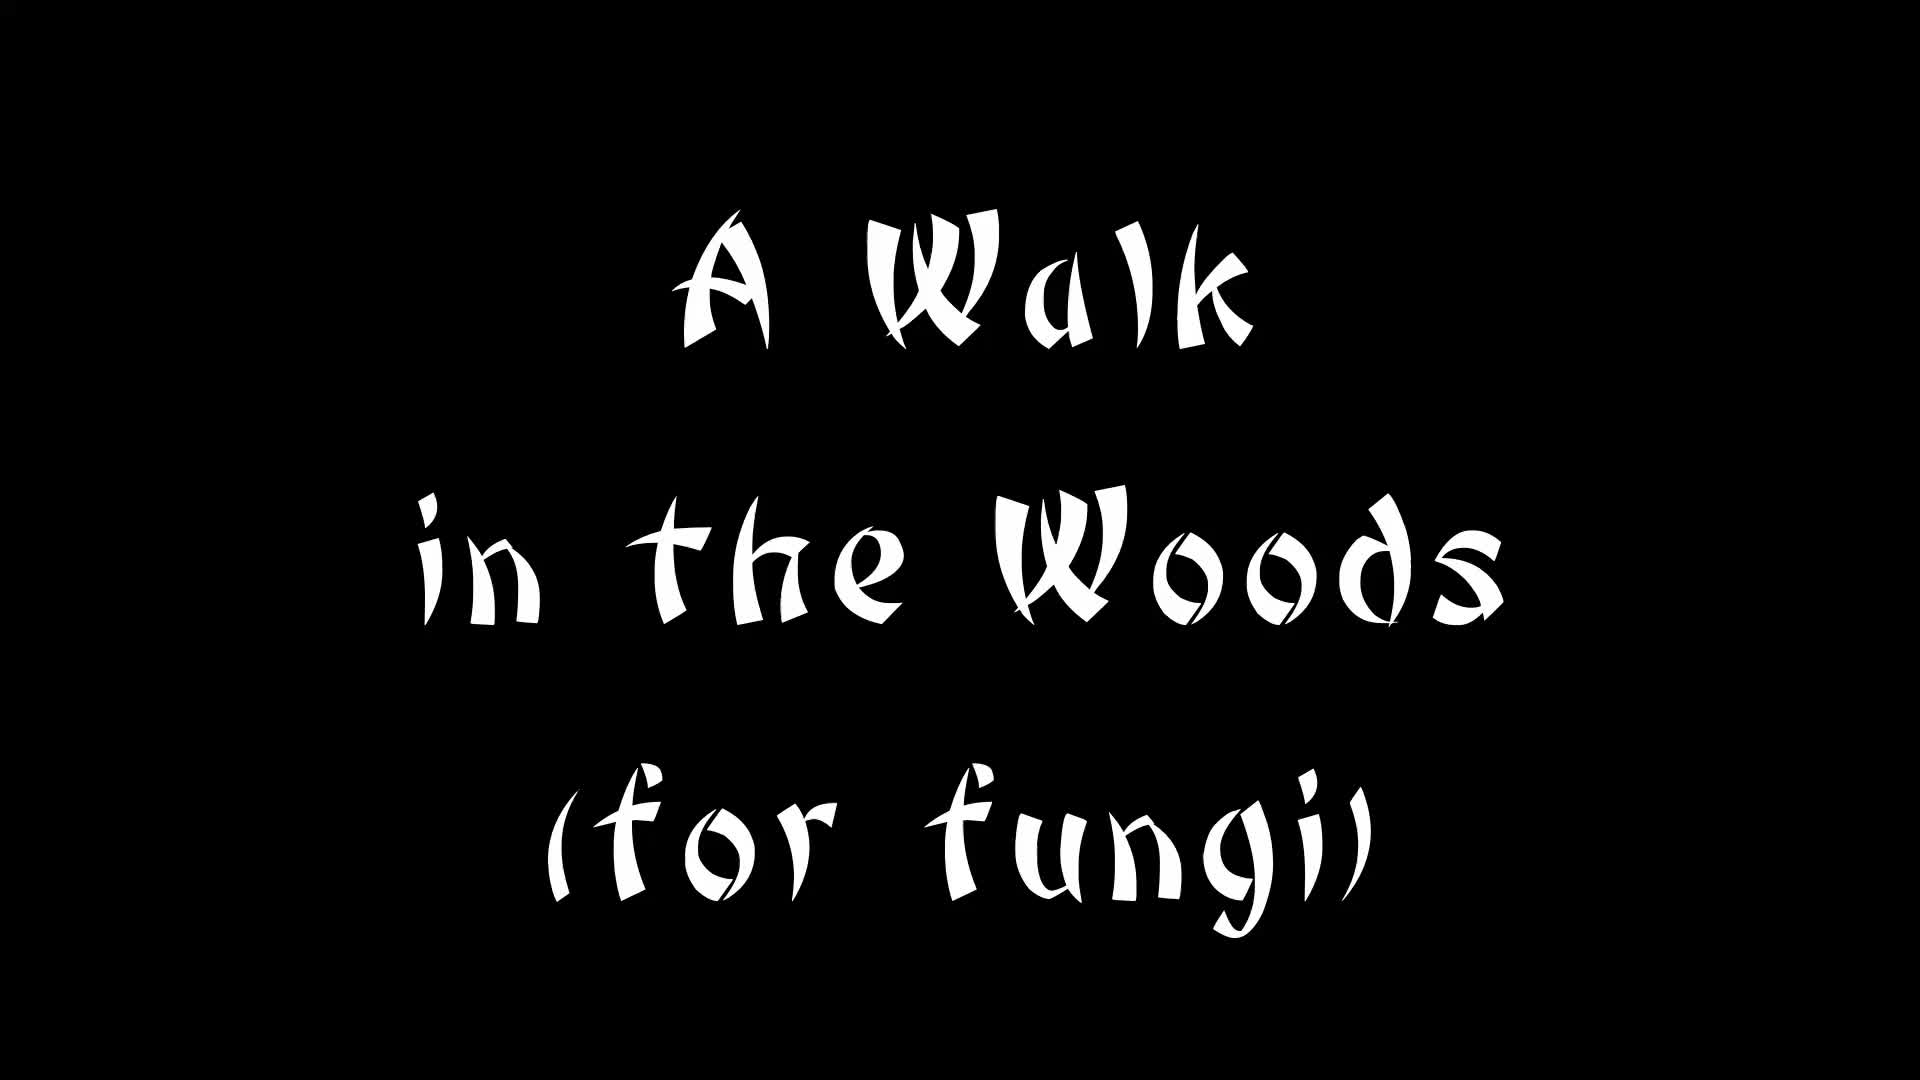 Gitsapalooza, People & Blogs, botany, fungi, micromycotut, mycology, walk, woods, Bushido 54: A Walk in the Woods (Fungus Foray) GIFs